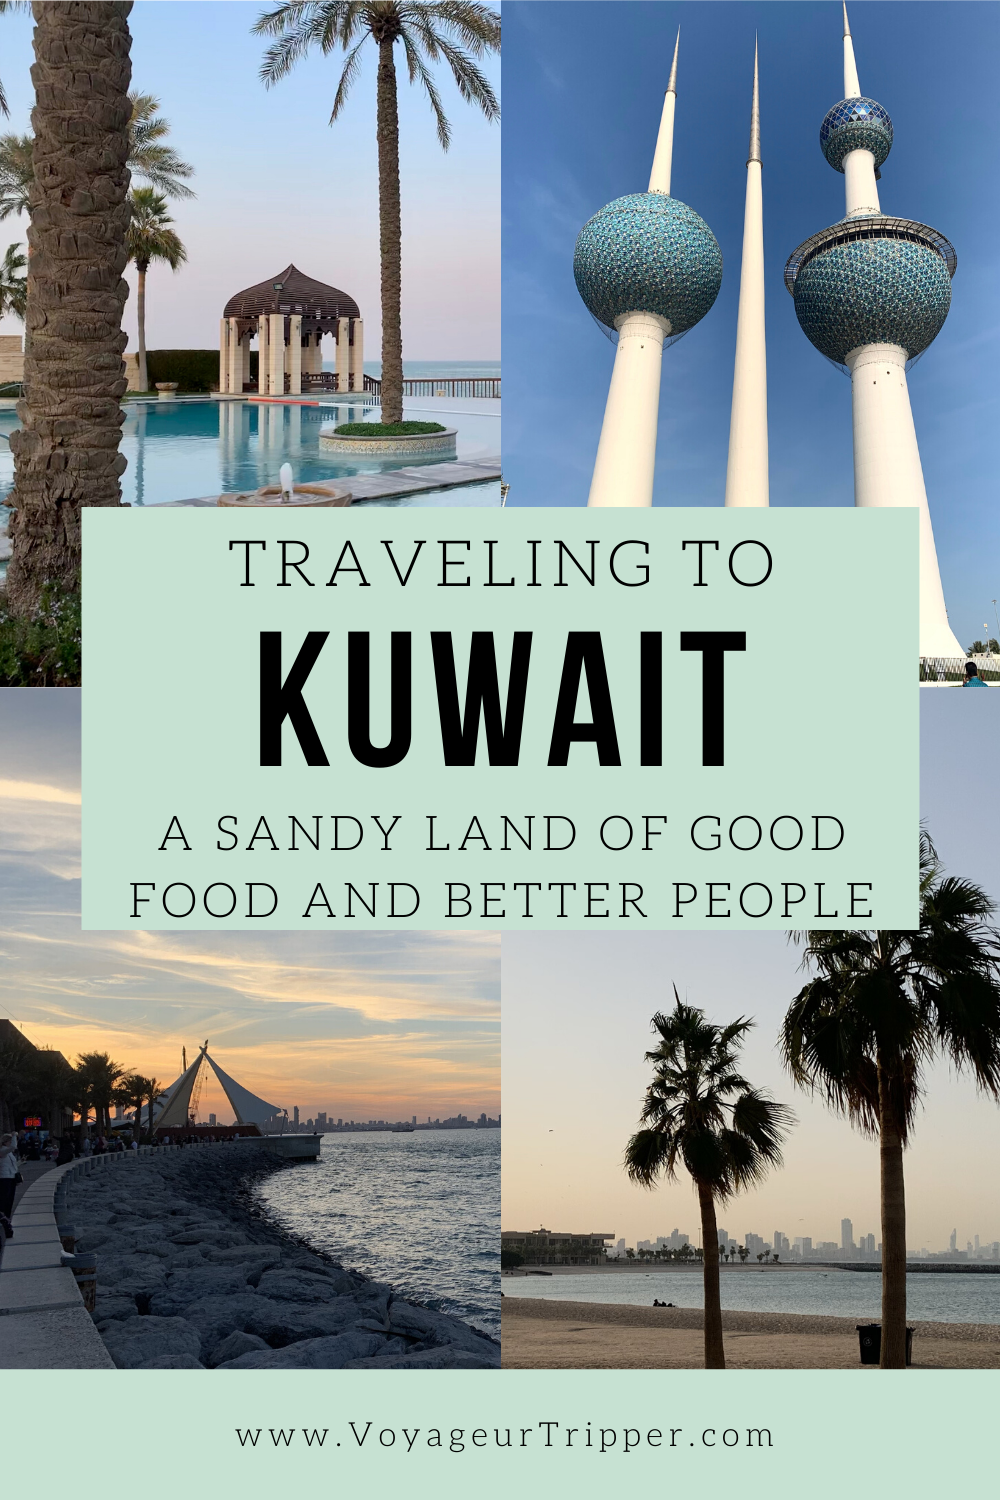 Traveling to Kuwait a sandy land of good food and better people - Voyageur Tripper